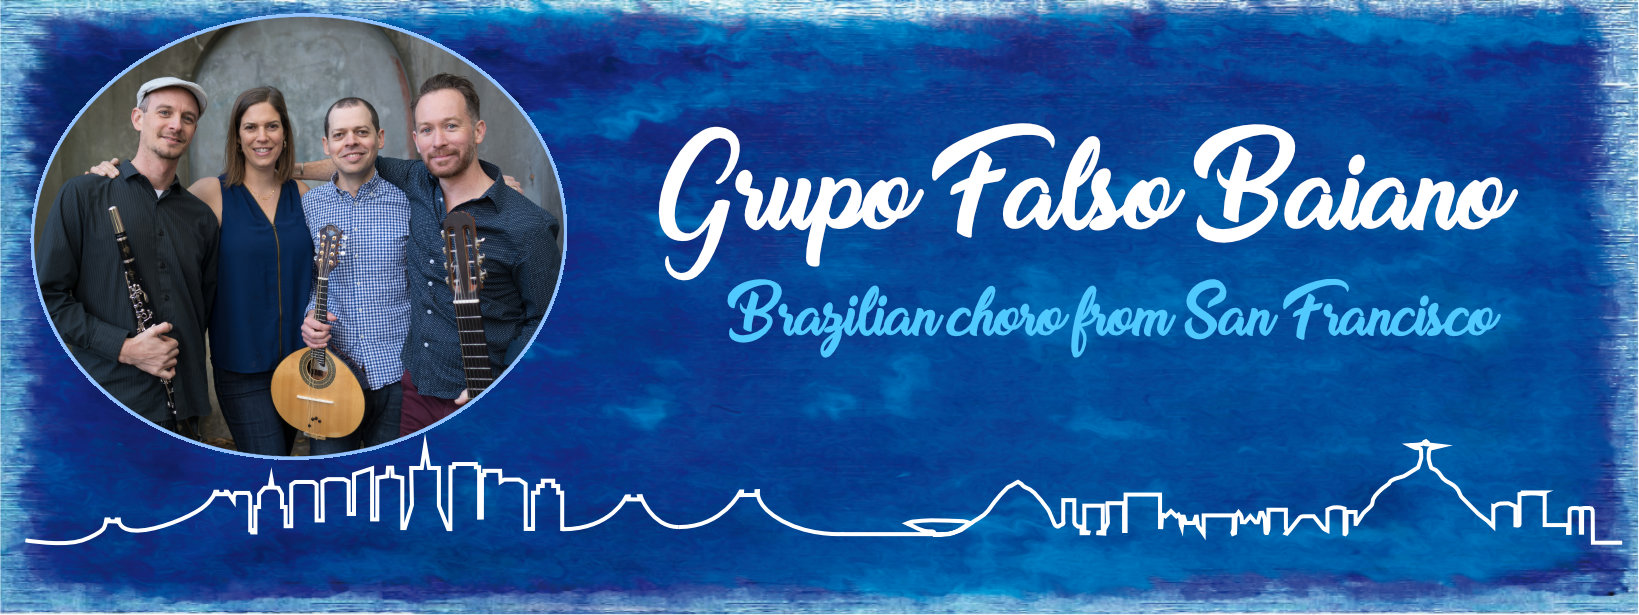 Grupo Falso Baiano - Brazilian choro from San Francisco